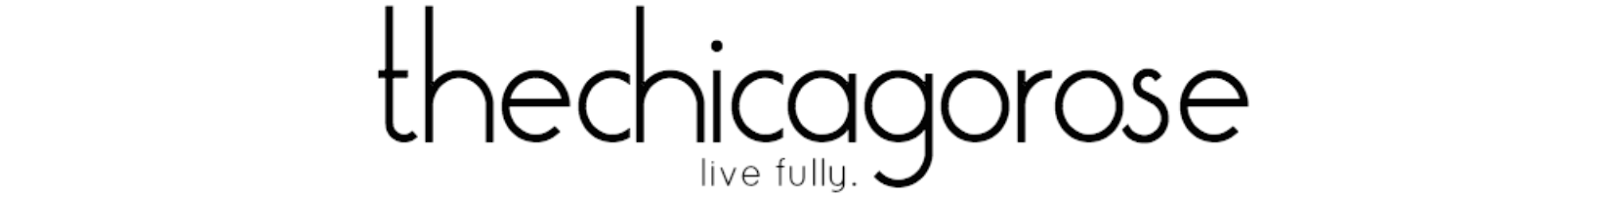 THECHICAGOROSE